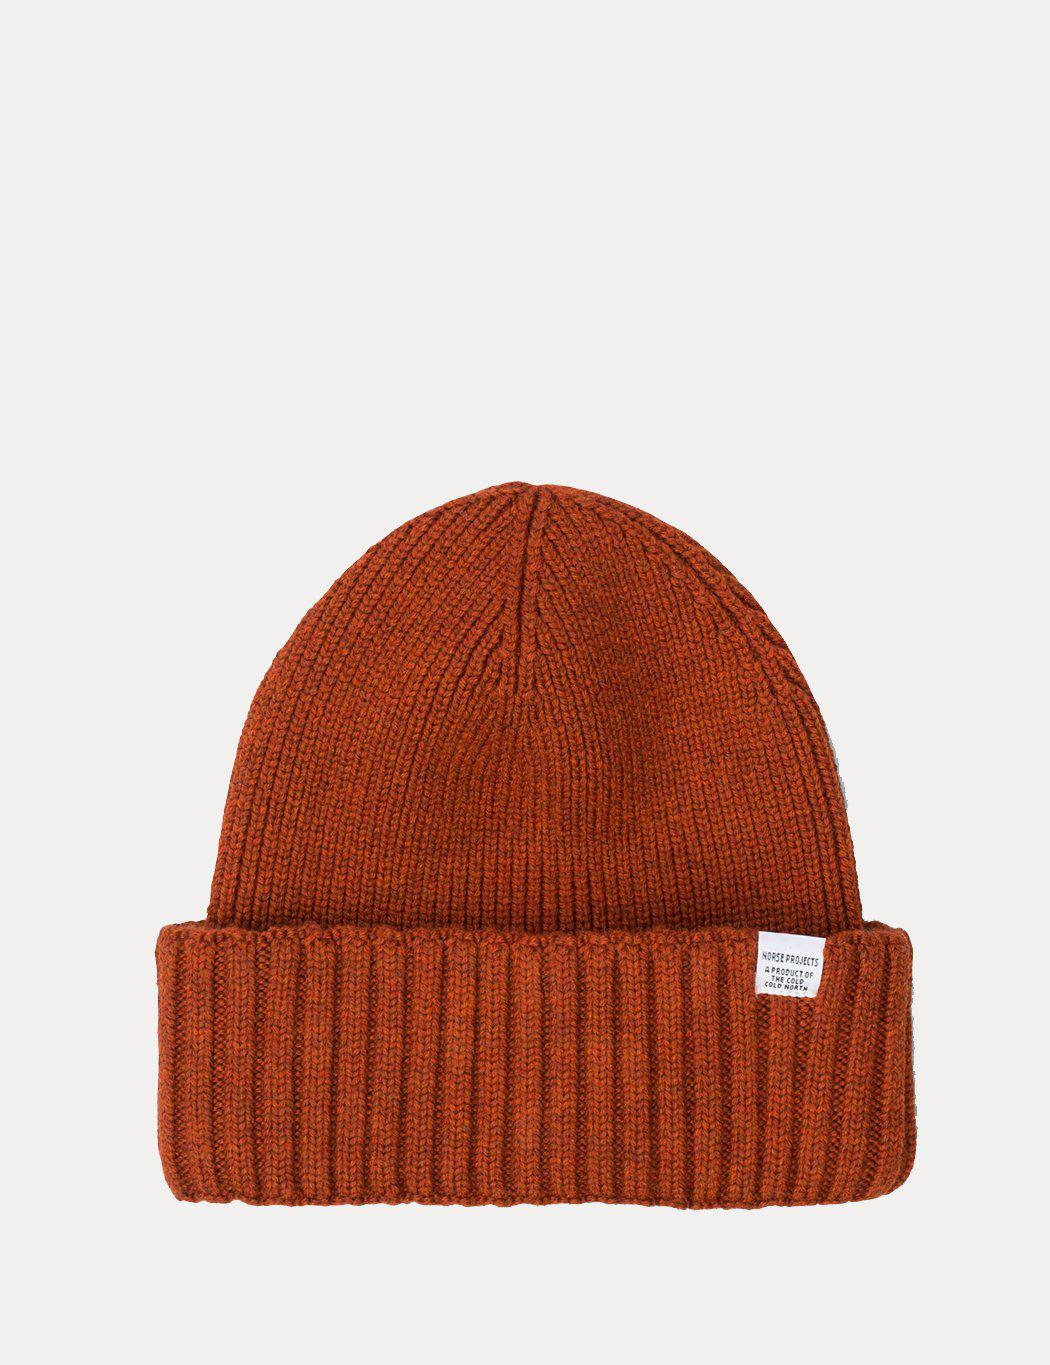 be3e0408af6 Lyst - Norse Projects Chunky Rib Beanie Hat in Orange for Men